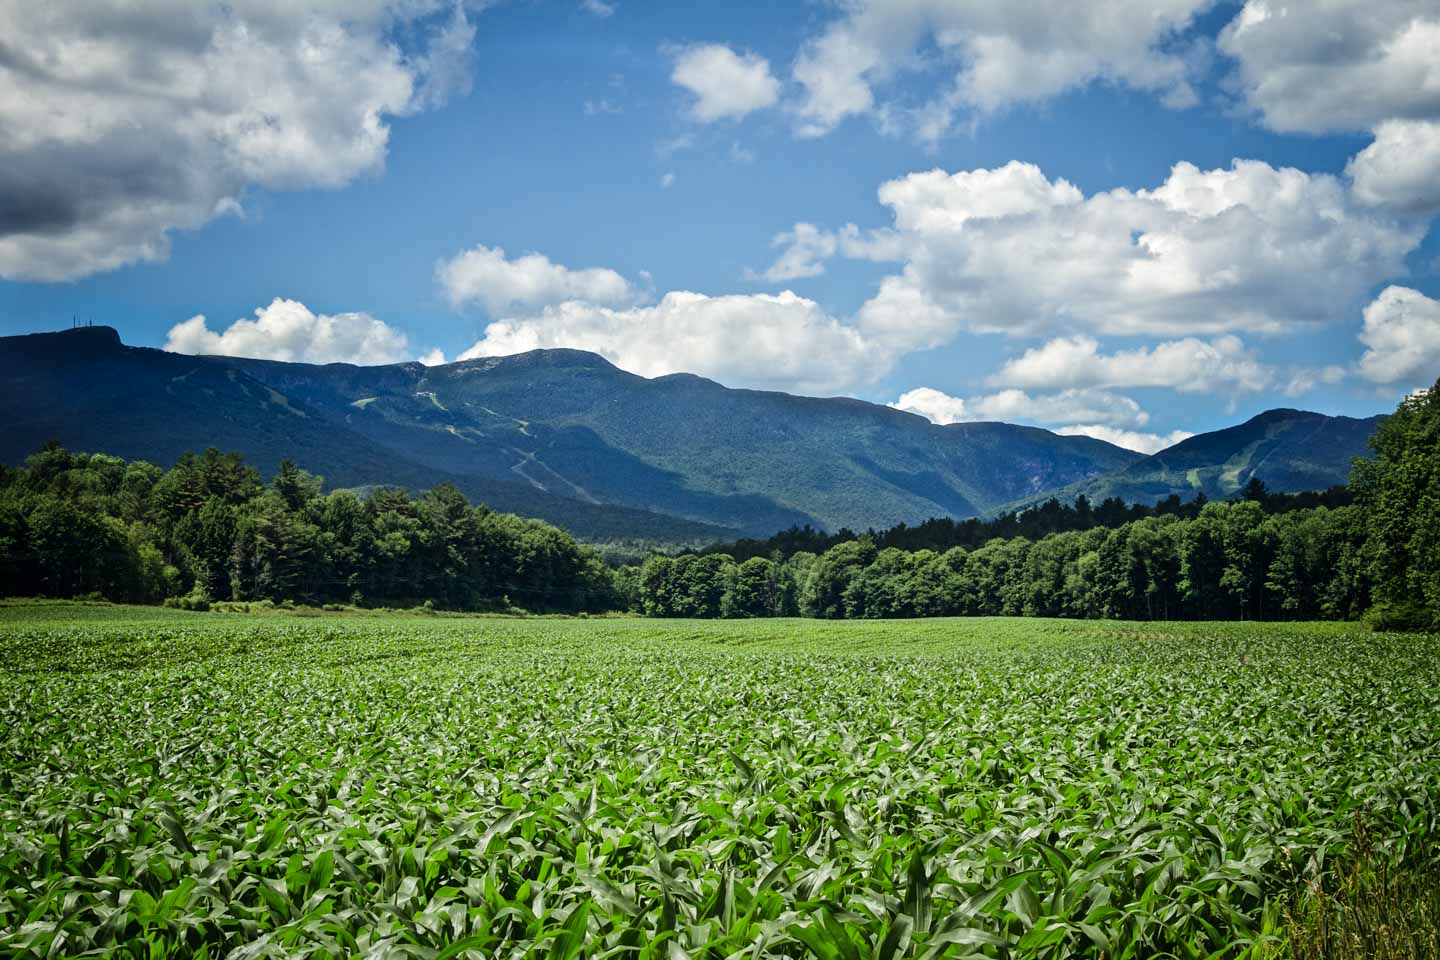 green cornfields in front mountain with ski trails in the background clouds in the sky